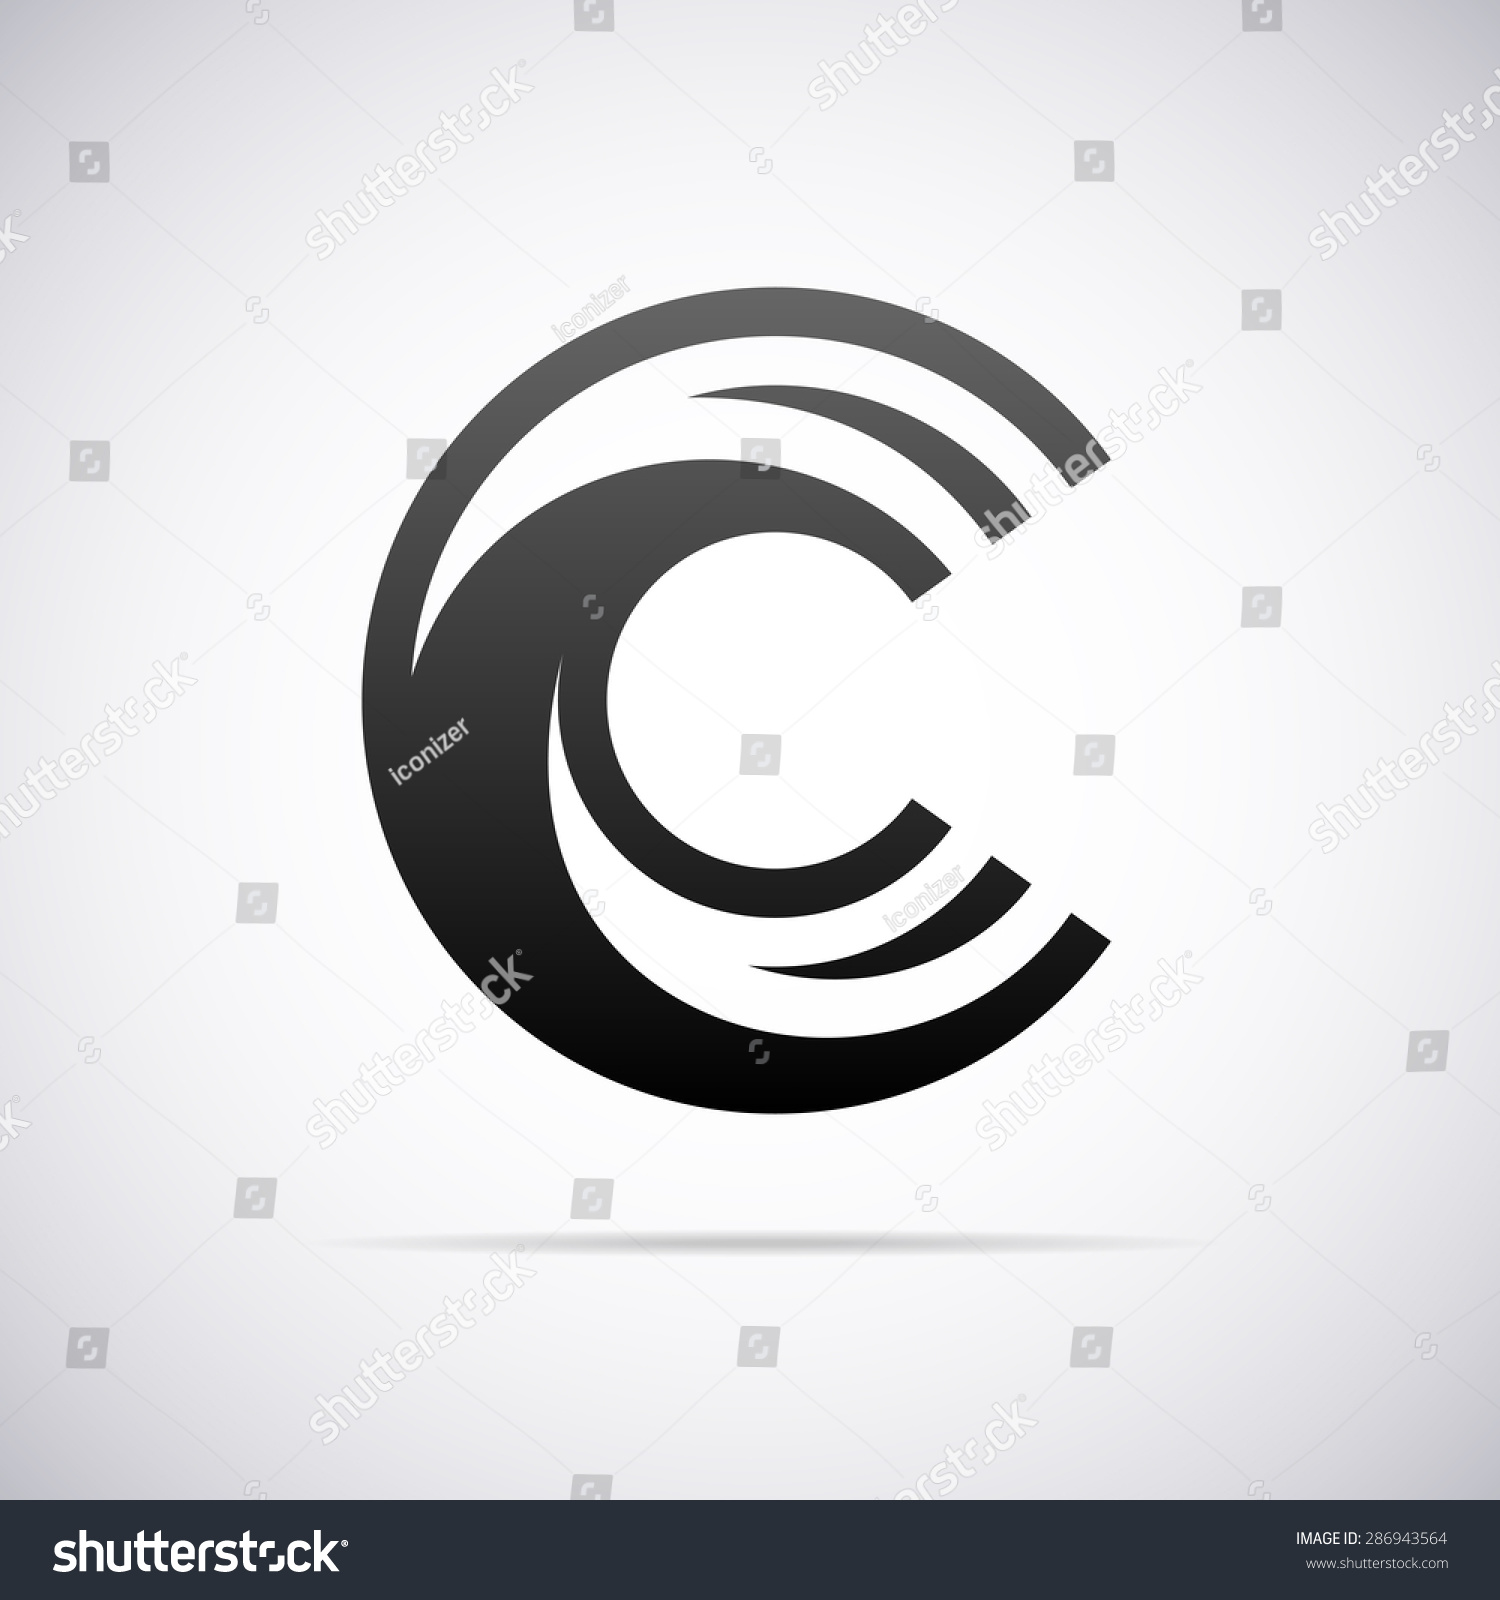 Famous 1 Circle Template Huge 10 Tips For Writing A Good Resume Solid 15 Year Old First Job Resume 2007 Powerpoint Templates Free Youthful 2014 2015 Academic Calendar Template Black2014 Resume Format Free Download Logo Letter C Design Template Stock Vector 286943564   Shutterstock